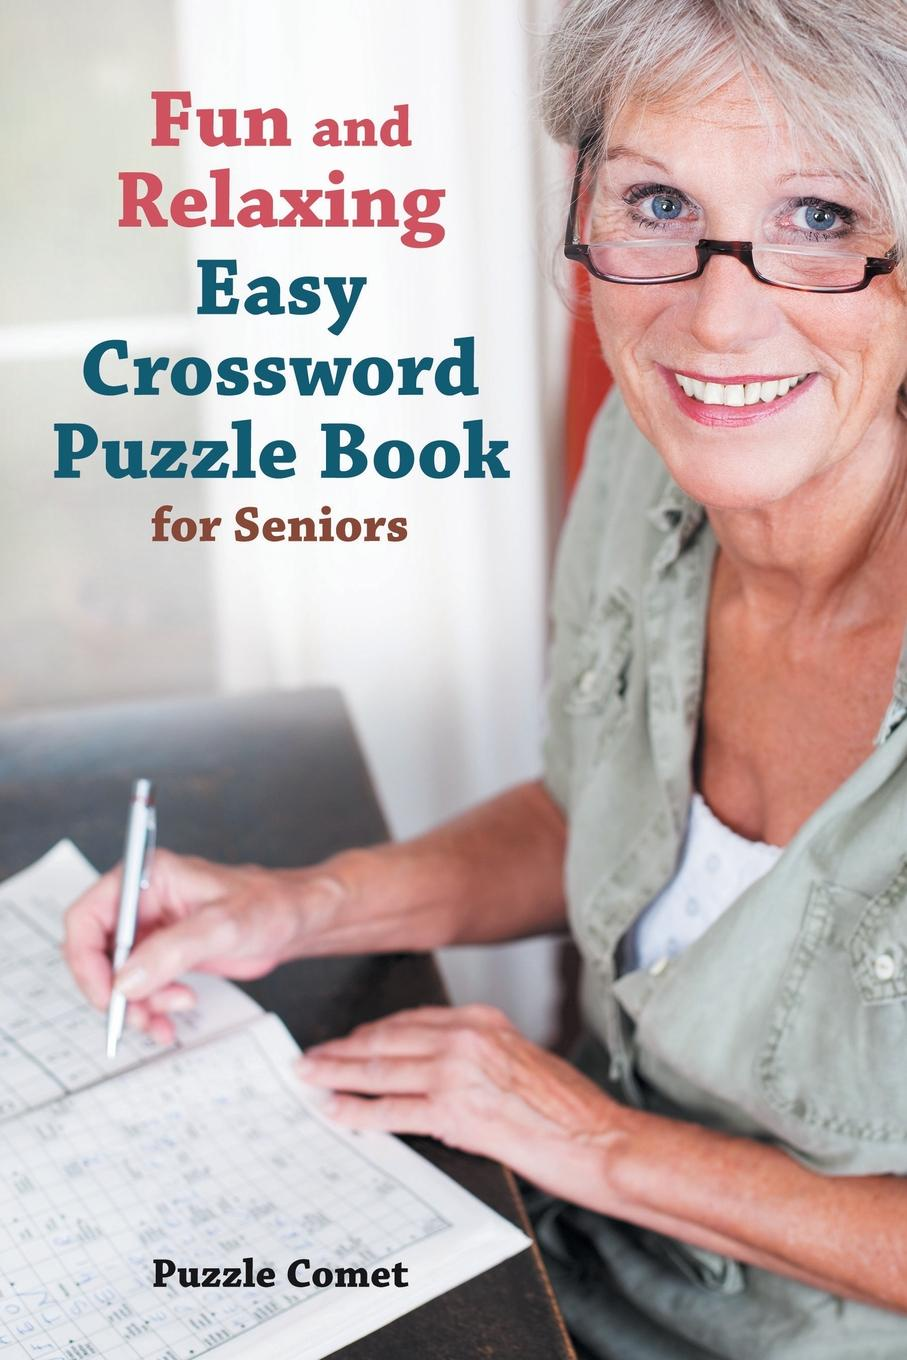 лучшая цена Puzzle Comet Fun and Relaxing Easy Crossword Puzzle Book for Seniors